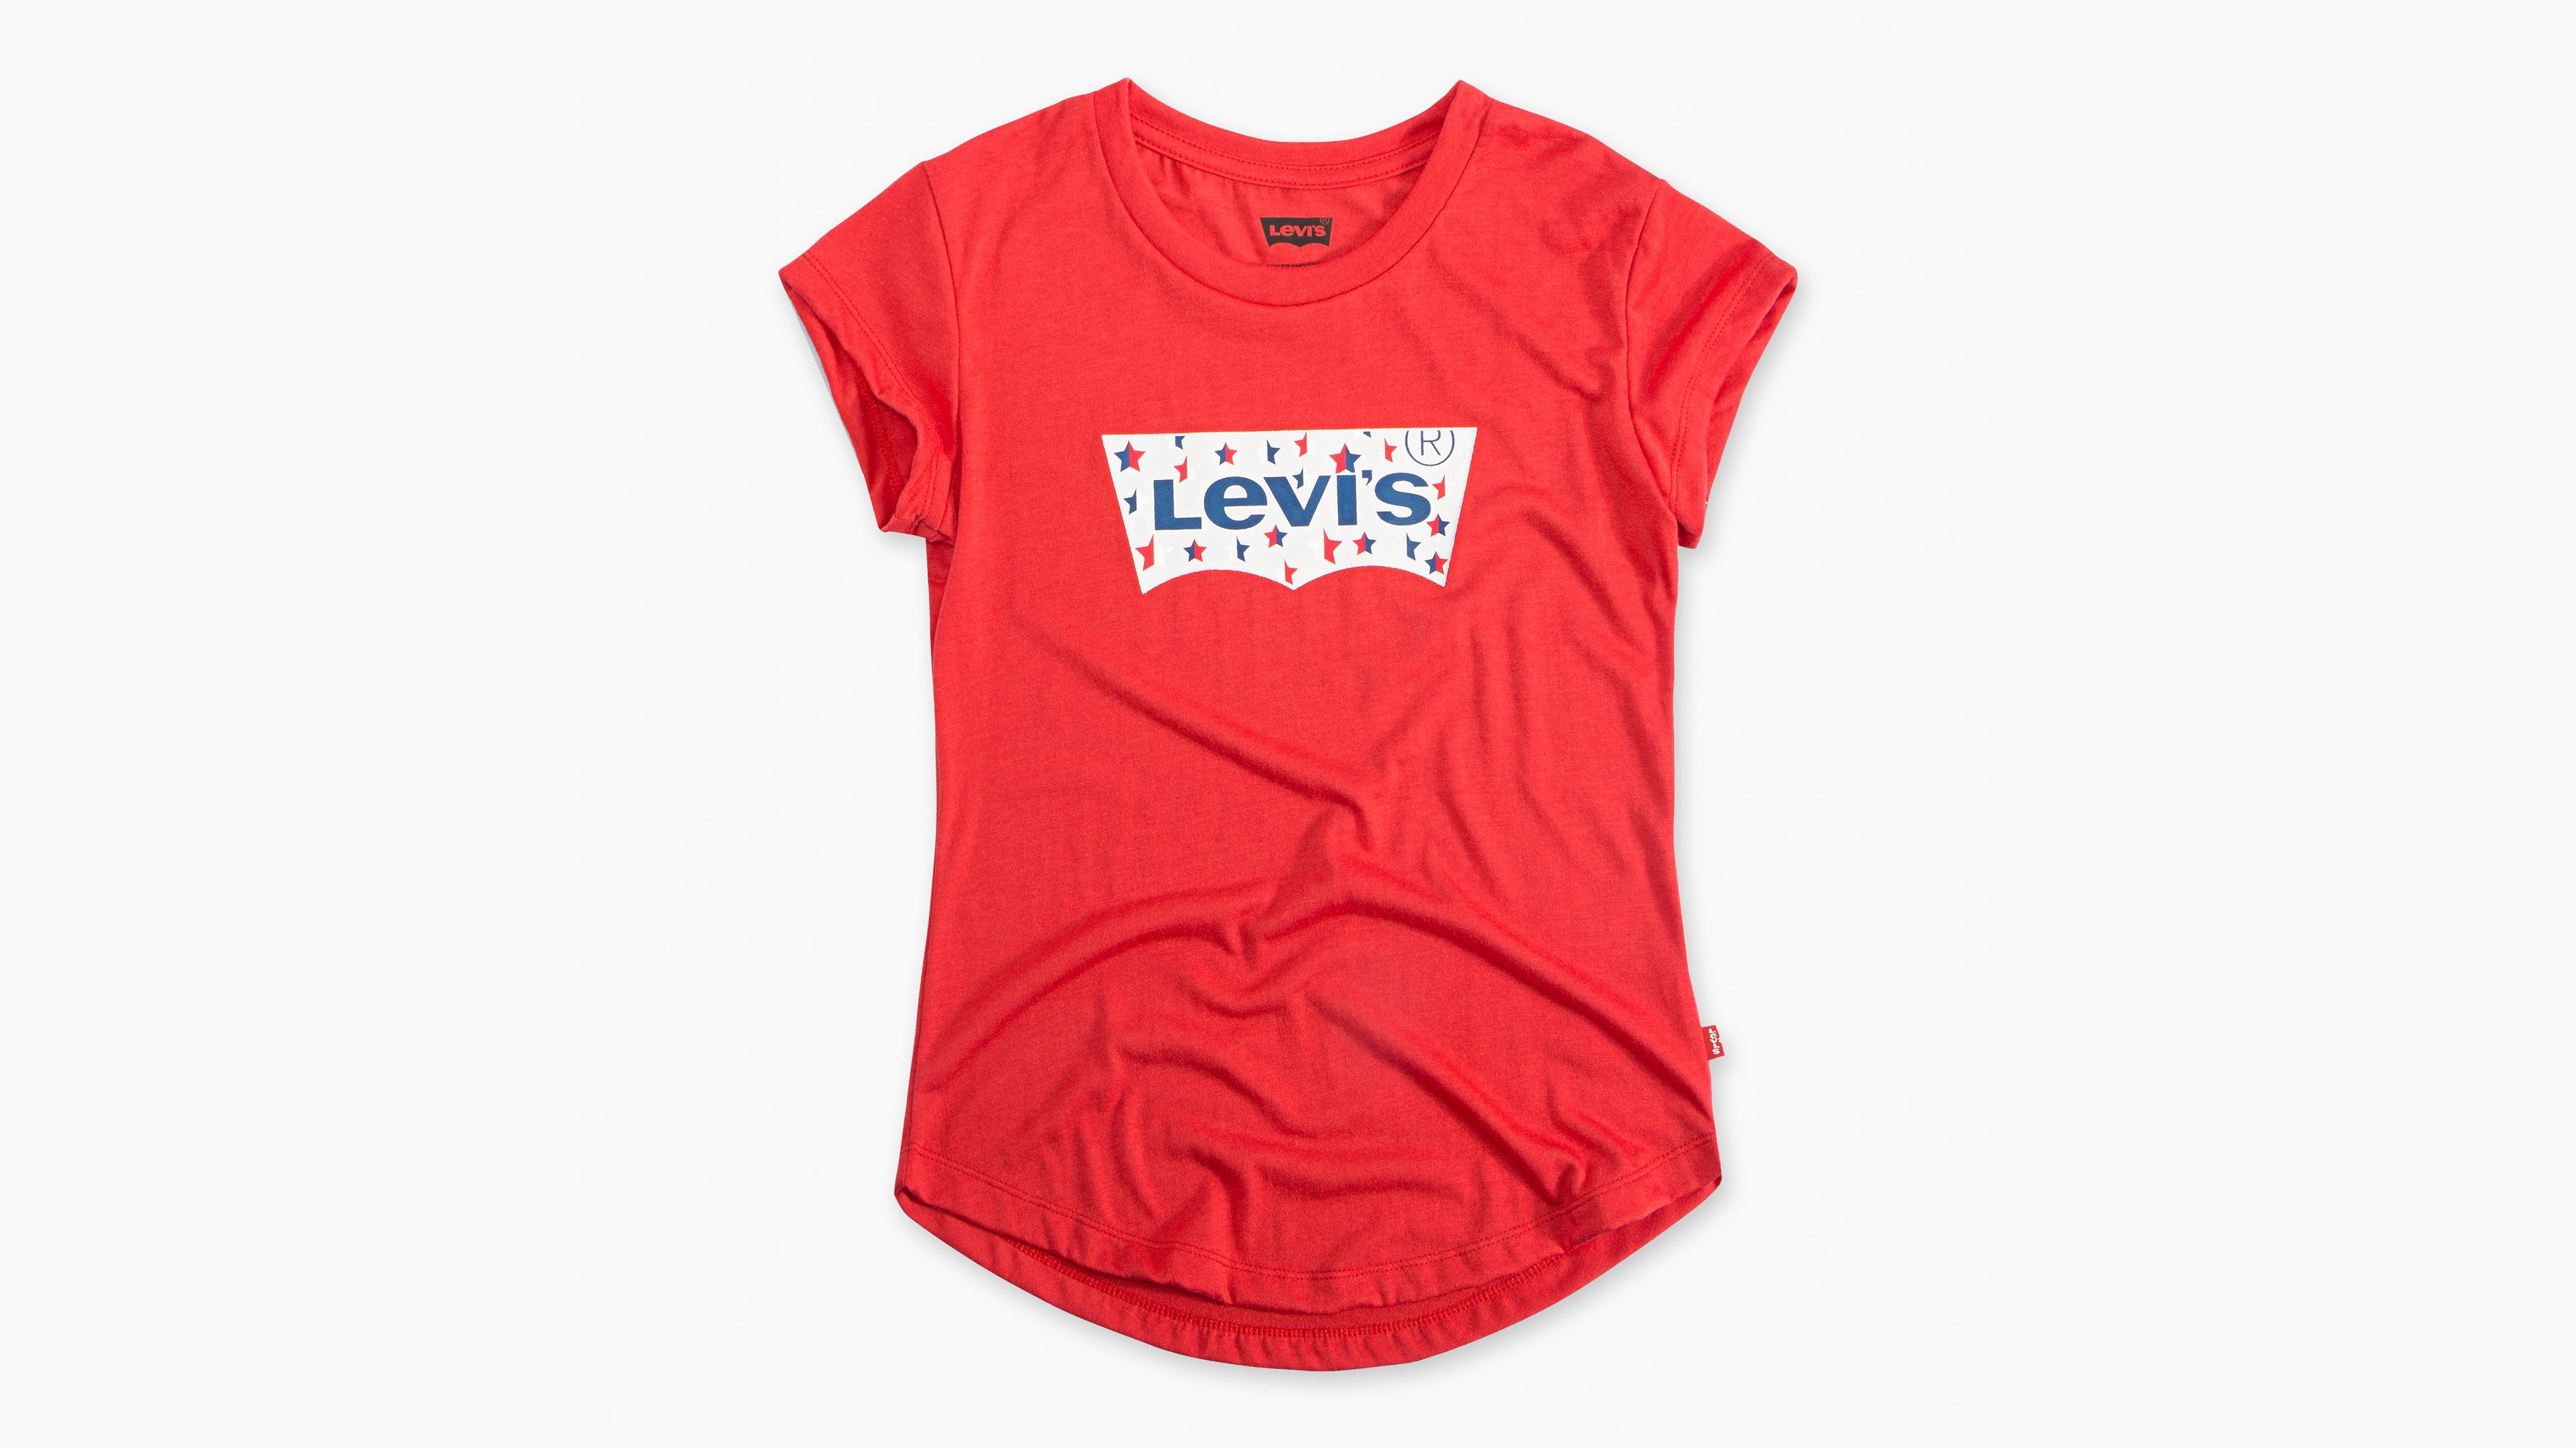 1052e4e17 Little Girls 4-6x Graphic Tee Shirt - Red | Levi's® US